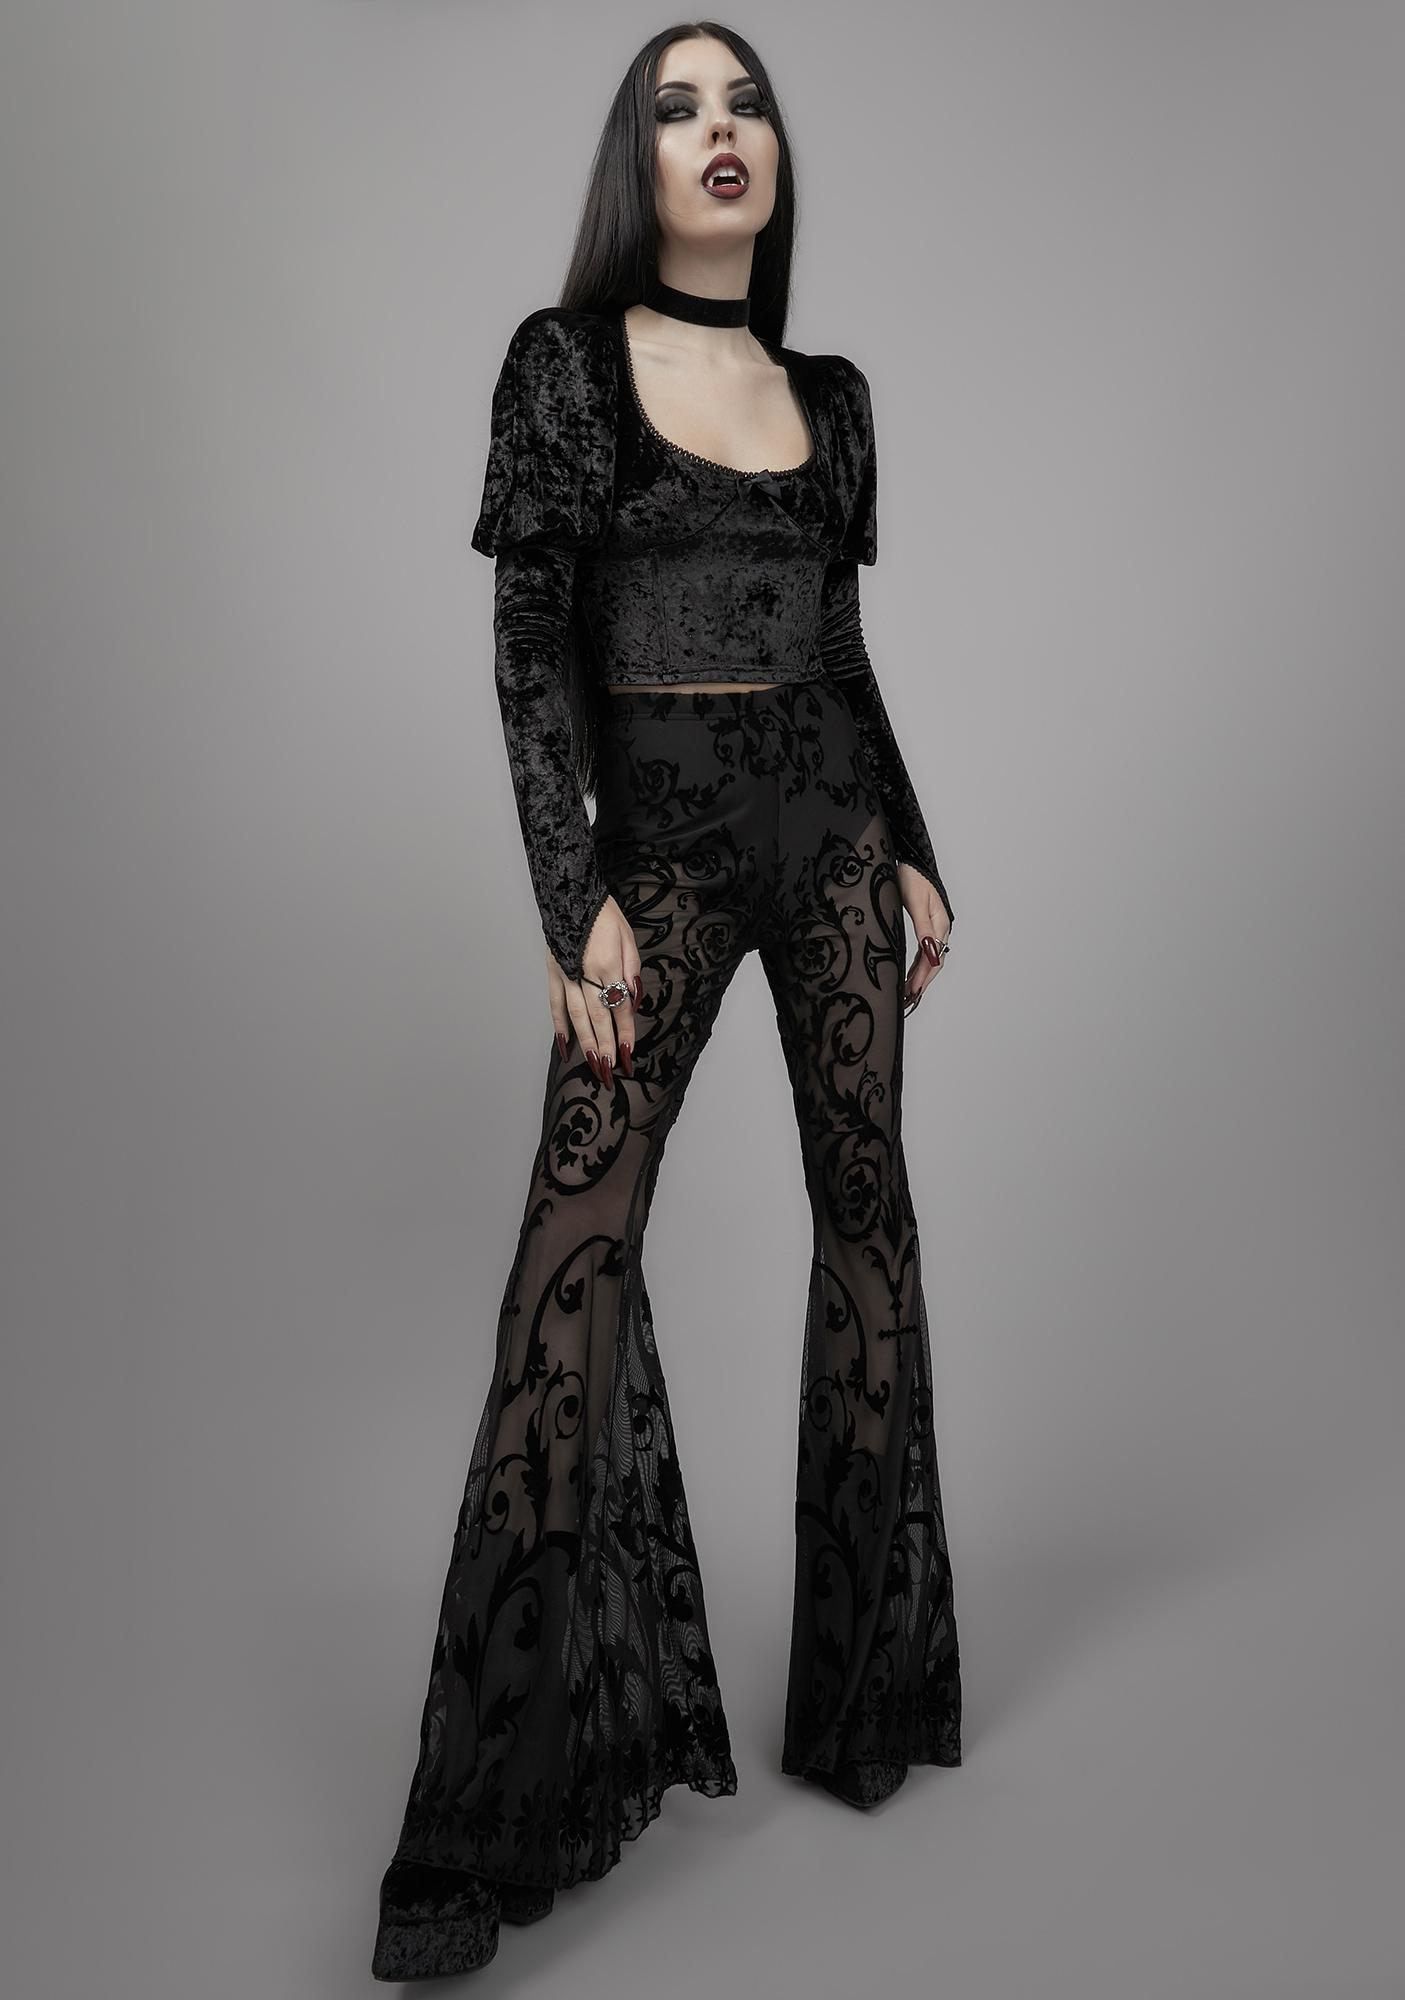 Widow Midnight's Embrace Mesh Flares